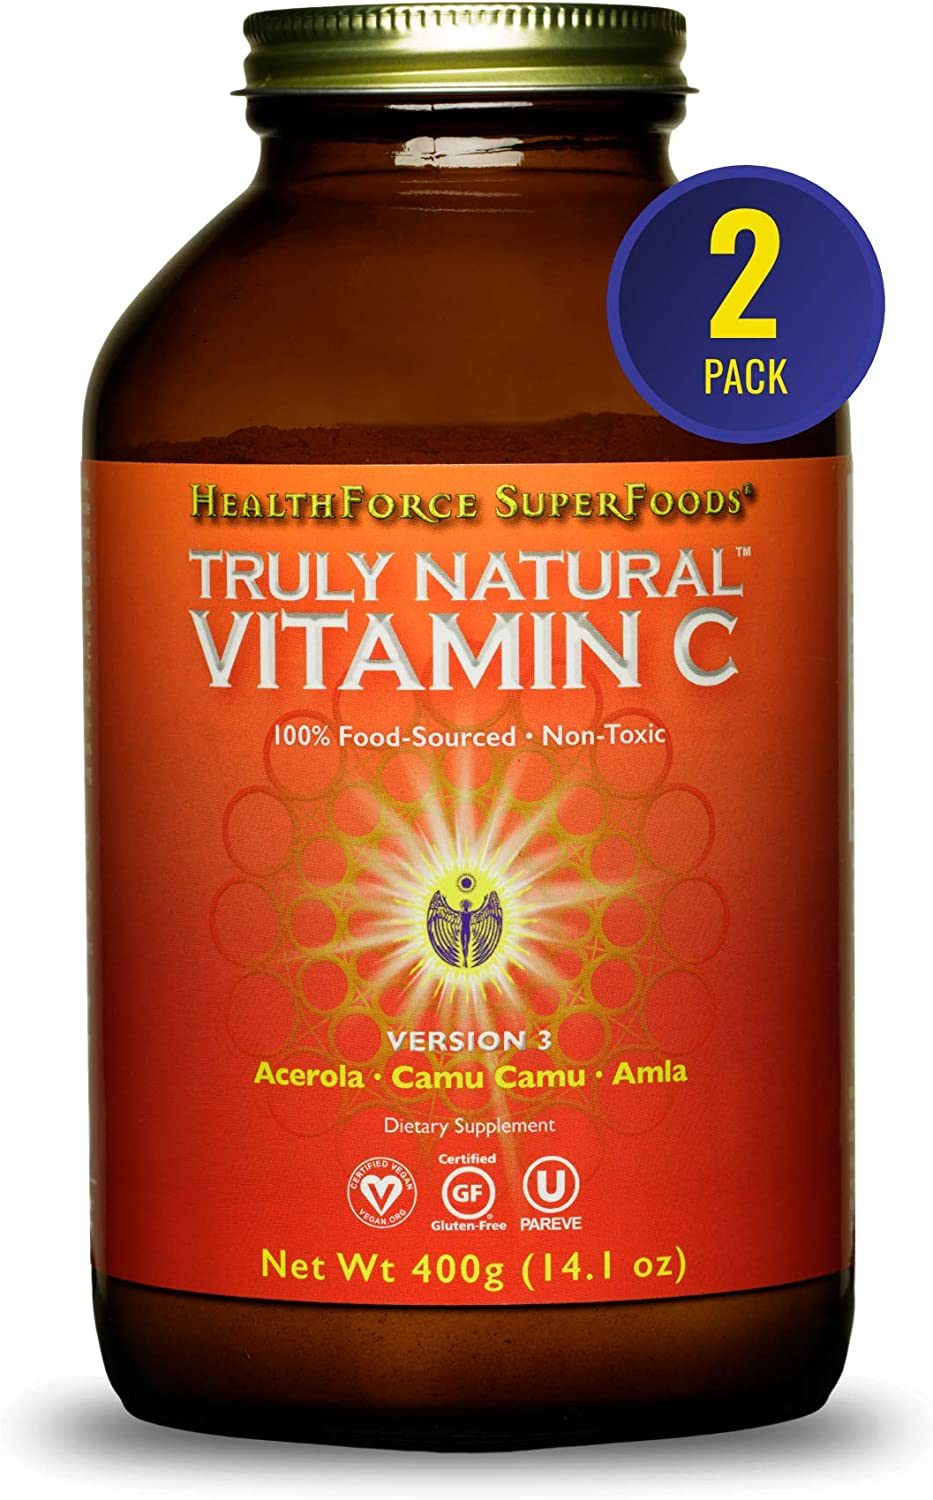 HealthForce SuperFoods Truly Natural Vitamin C - 400 Grams - Pack of 2 - Whole Food, Organic Vitamin C Complex from Acerola Cherry Powder - Immune Support - Vegan, Gluten Free - 134 Total Servings